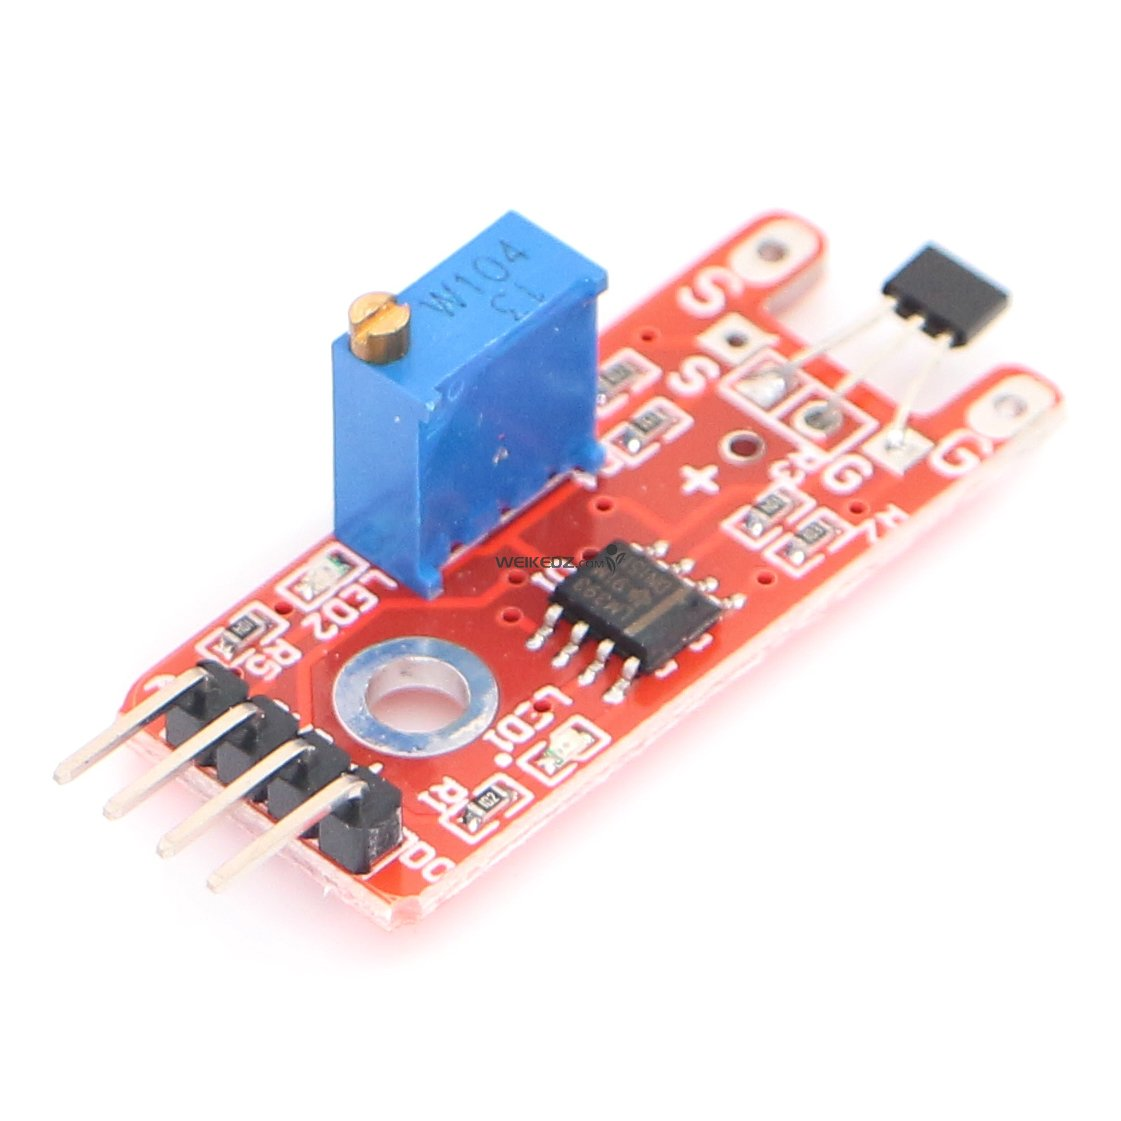 Linear Magnetic Hall Sensor Module Ky 024 Shenzhen Weikedz Effect Circuits Switch Integrated Circuit Using Principle Uses The Semiconductor Technology Manufacturing Susceptibility Of